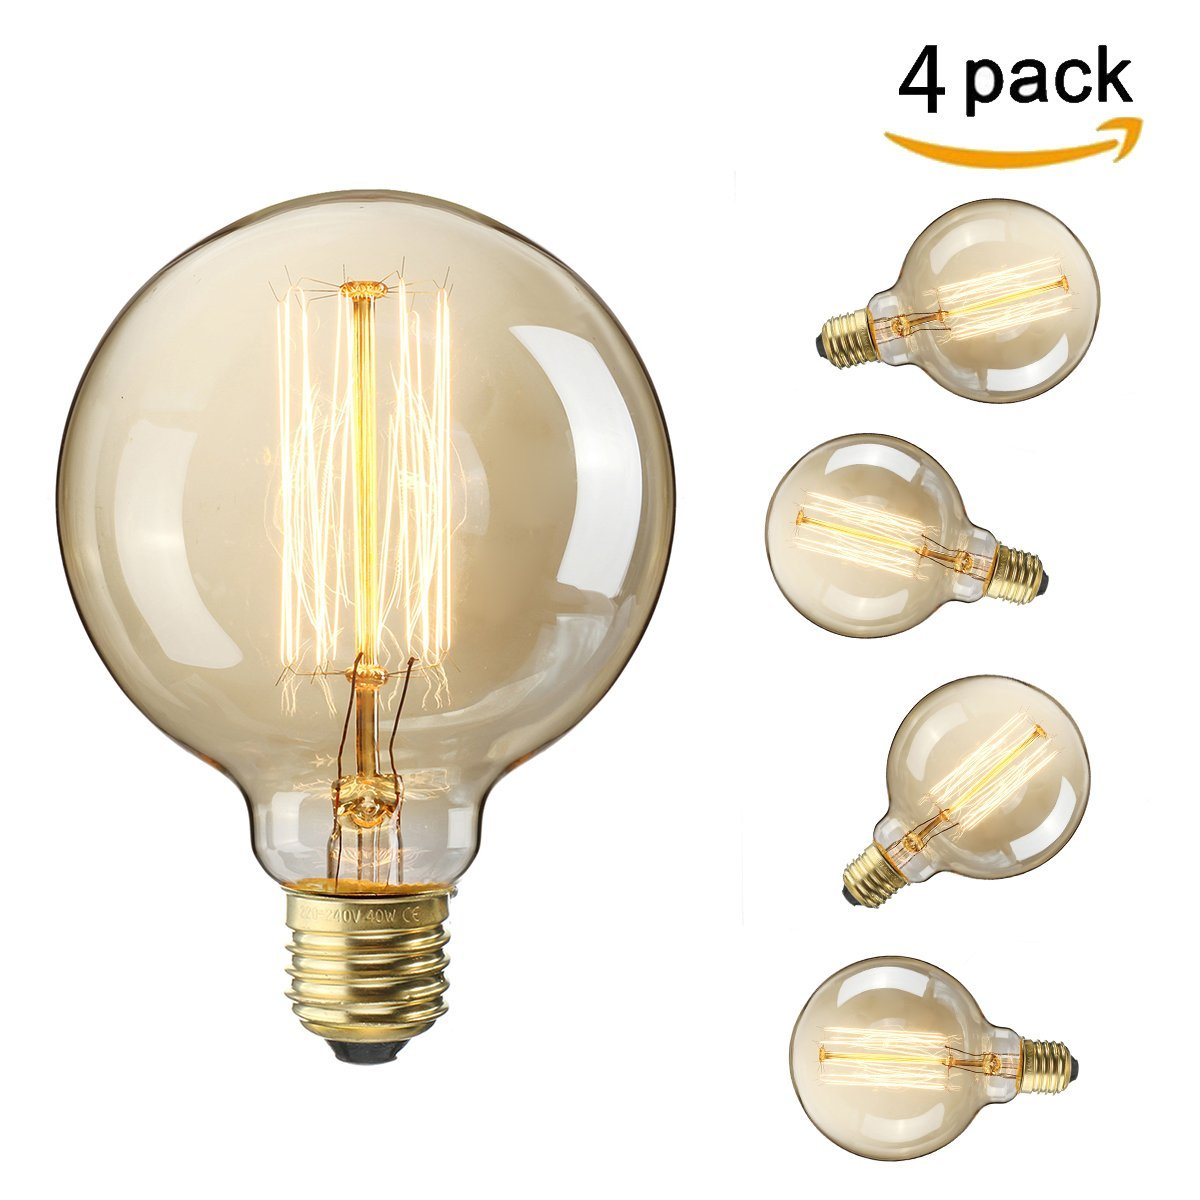 Elfeland Vintage Edison Globe Light Bulb - Retro Classic Style Squirrel cage Tungsten Filament Decorative Light Bulbs - 32 Anchors - Screw E27 40W 220V - Dimmable - Model G95 (φ95mm) - 4 packs [Energy Class E]